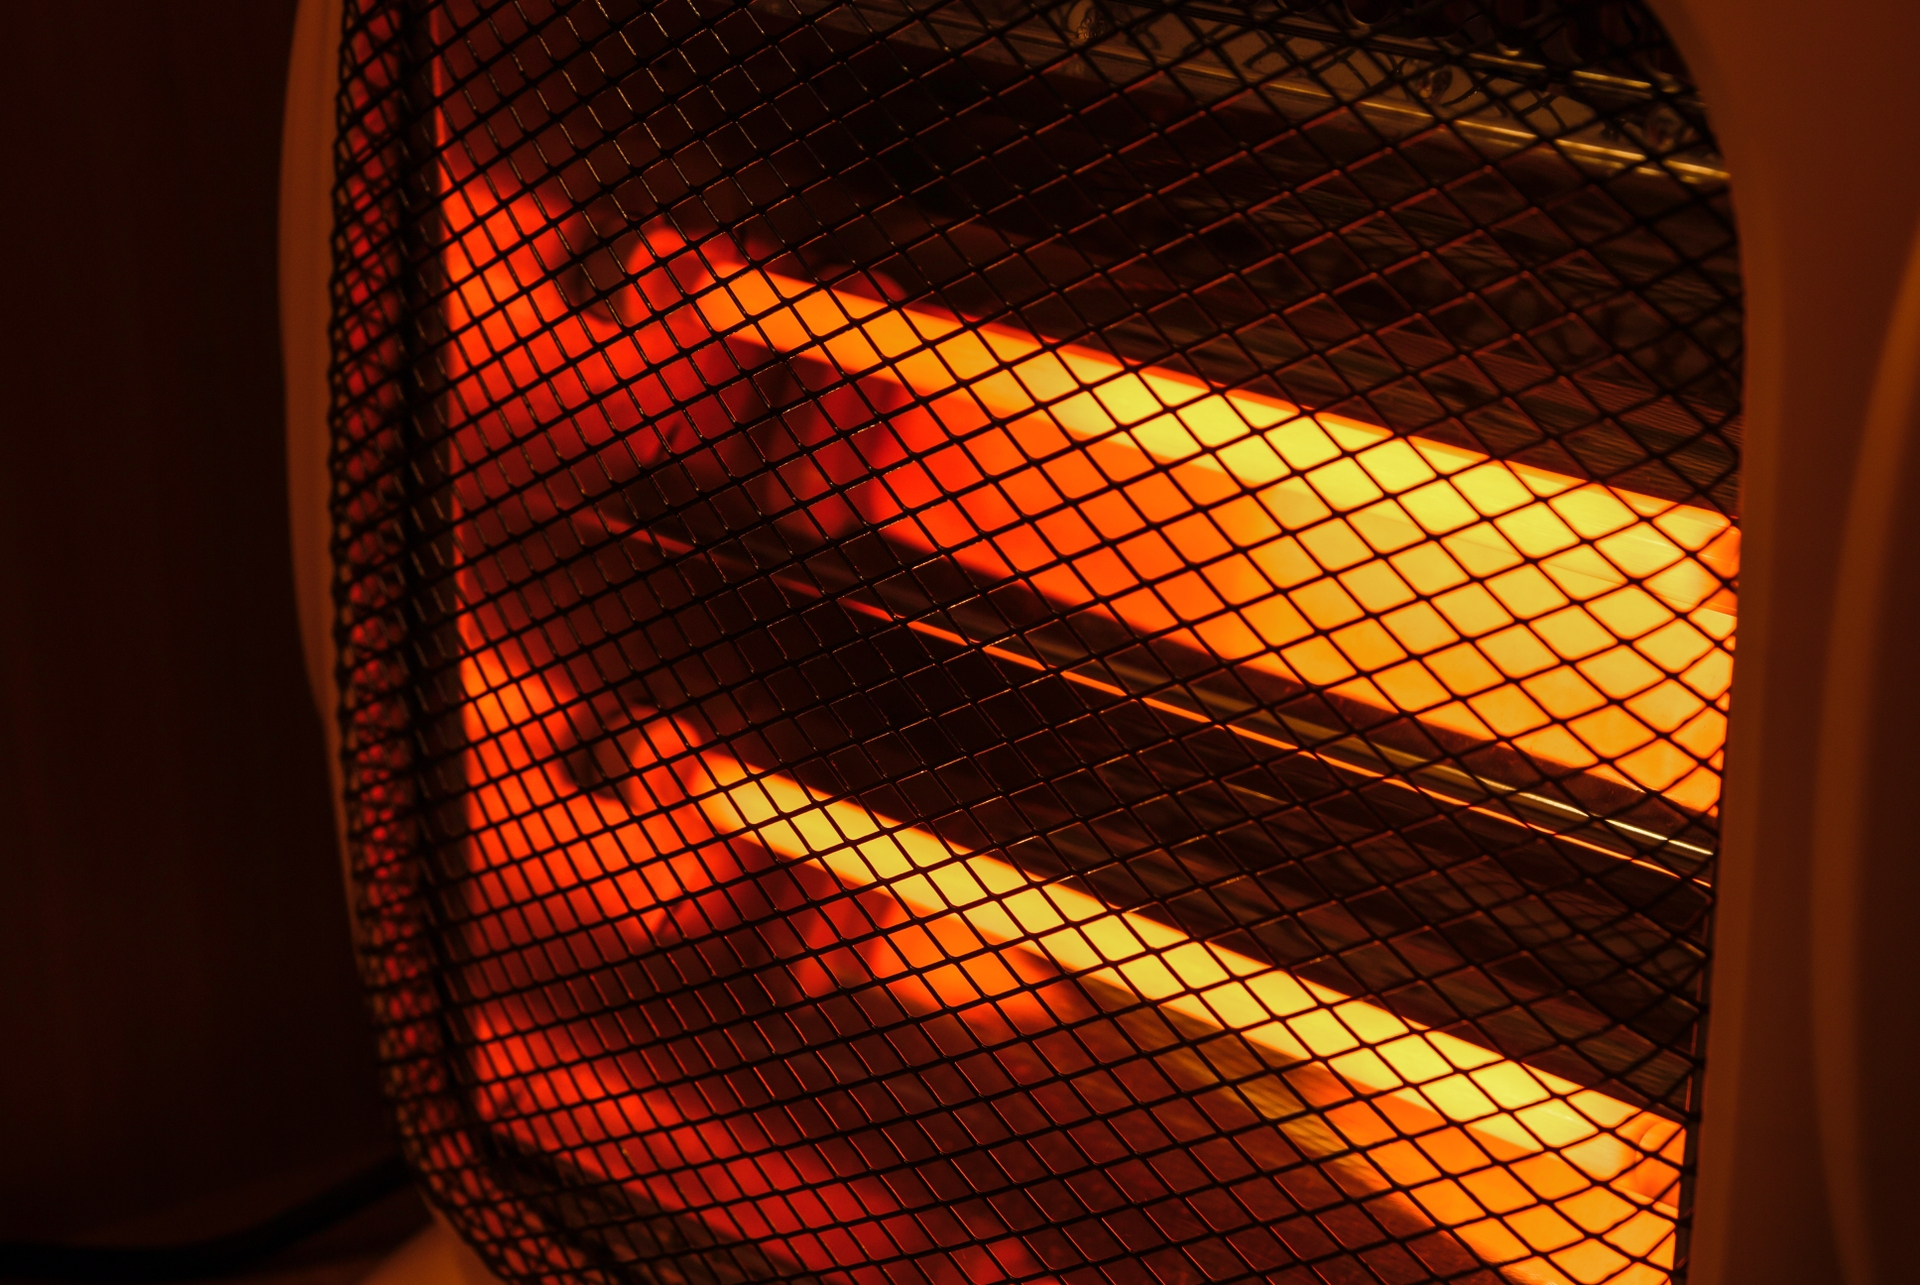 Space heaters should be kept at least three feet away from flammable items.